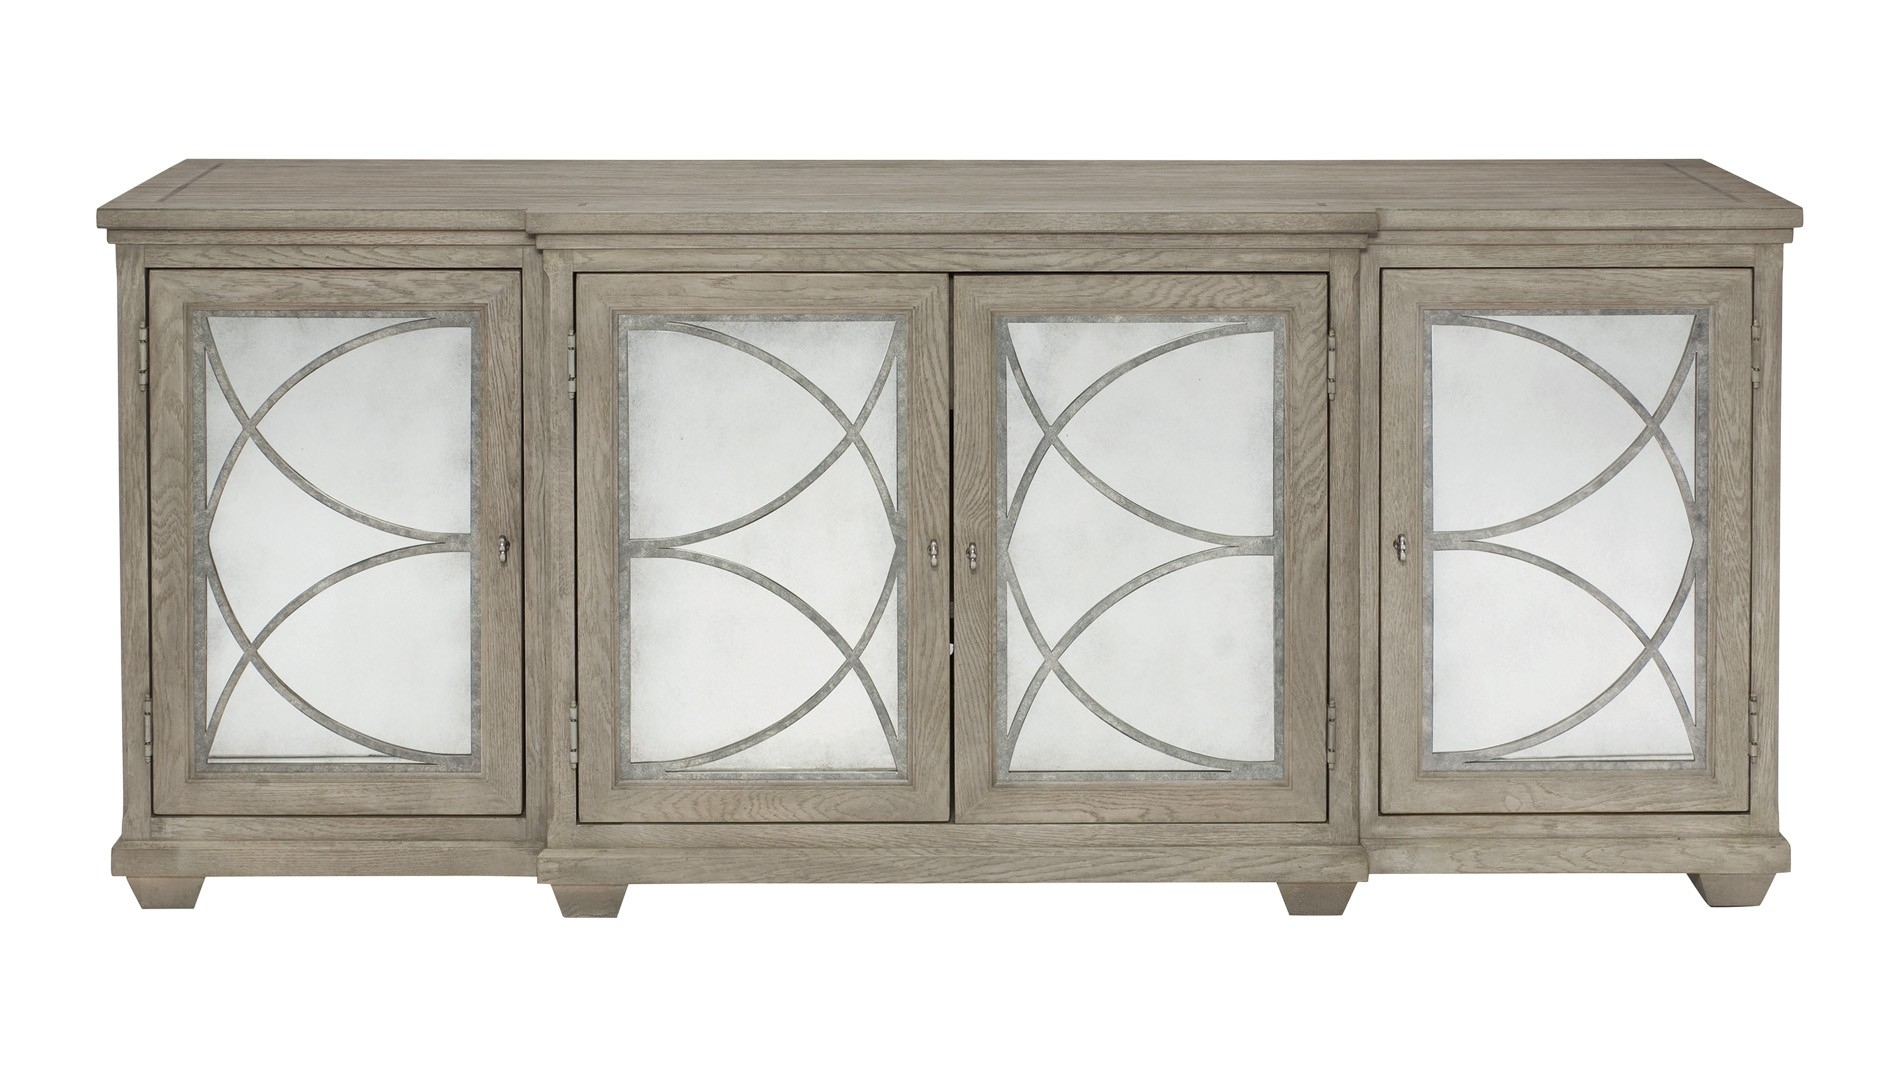 Bernhardt, Marquesa Sideboard - Antique Mirror, Buy Online At Luxdeco pertaining to Aged Mirrored 4 Door Sideboards (Image 9 of 30)